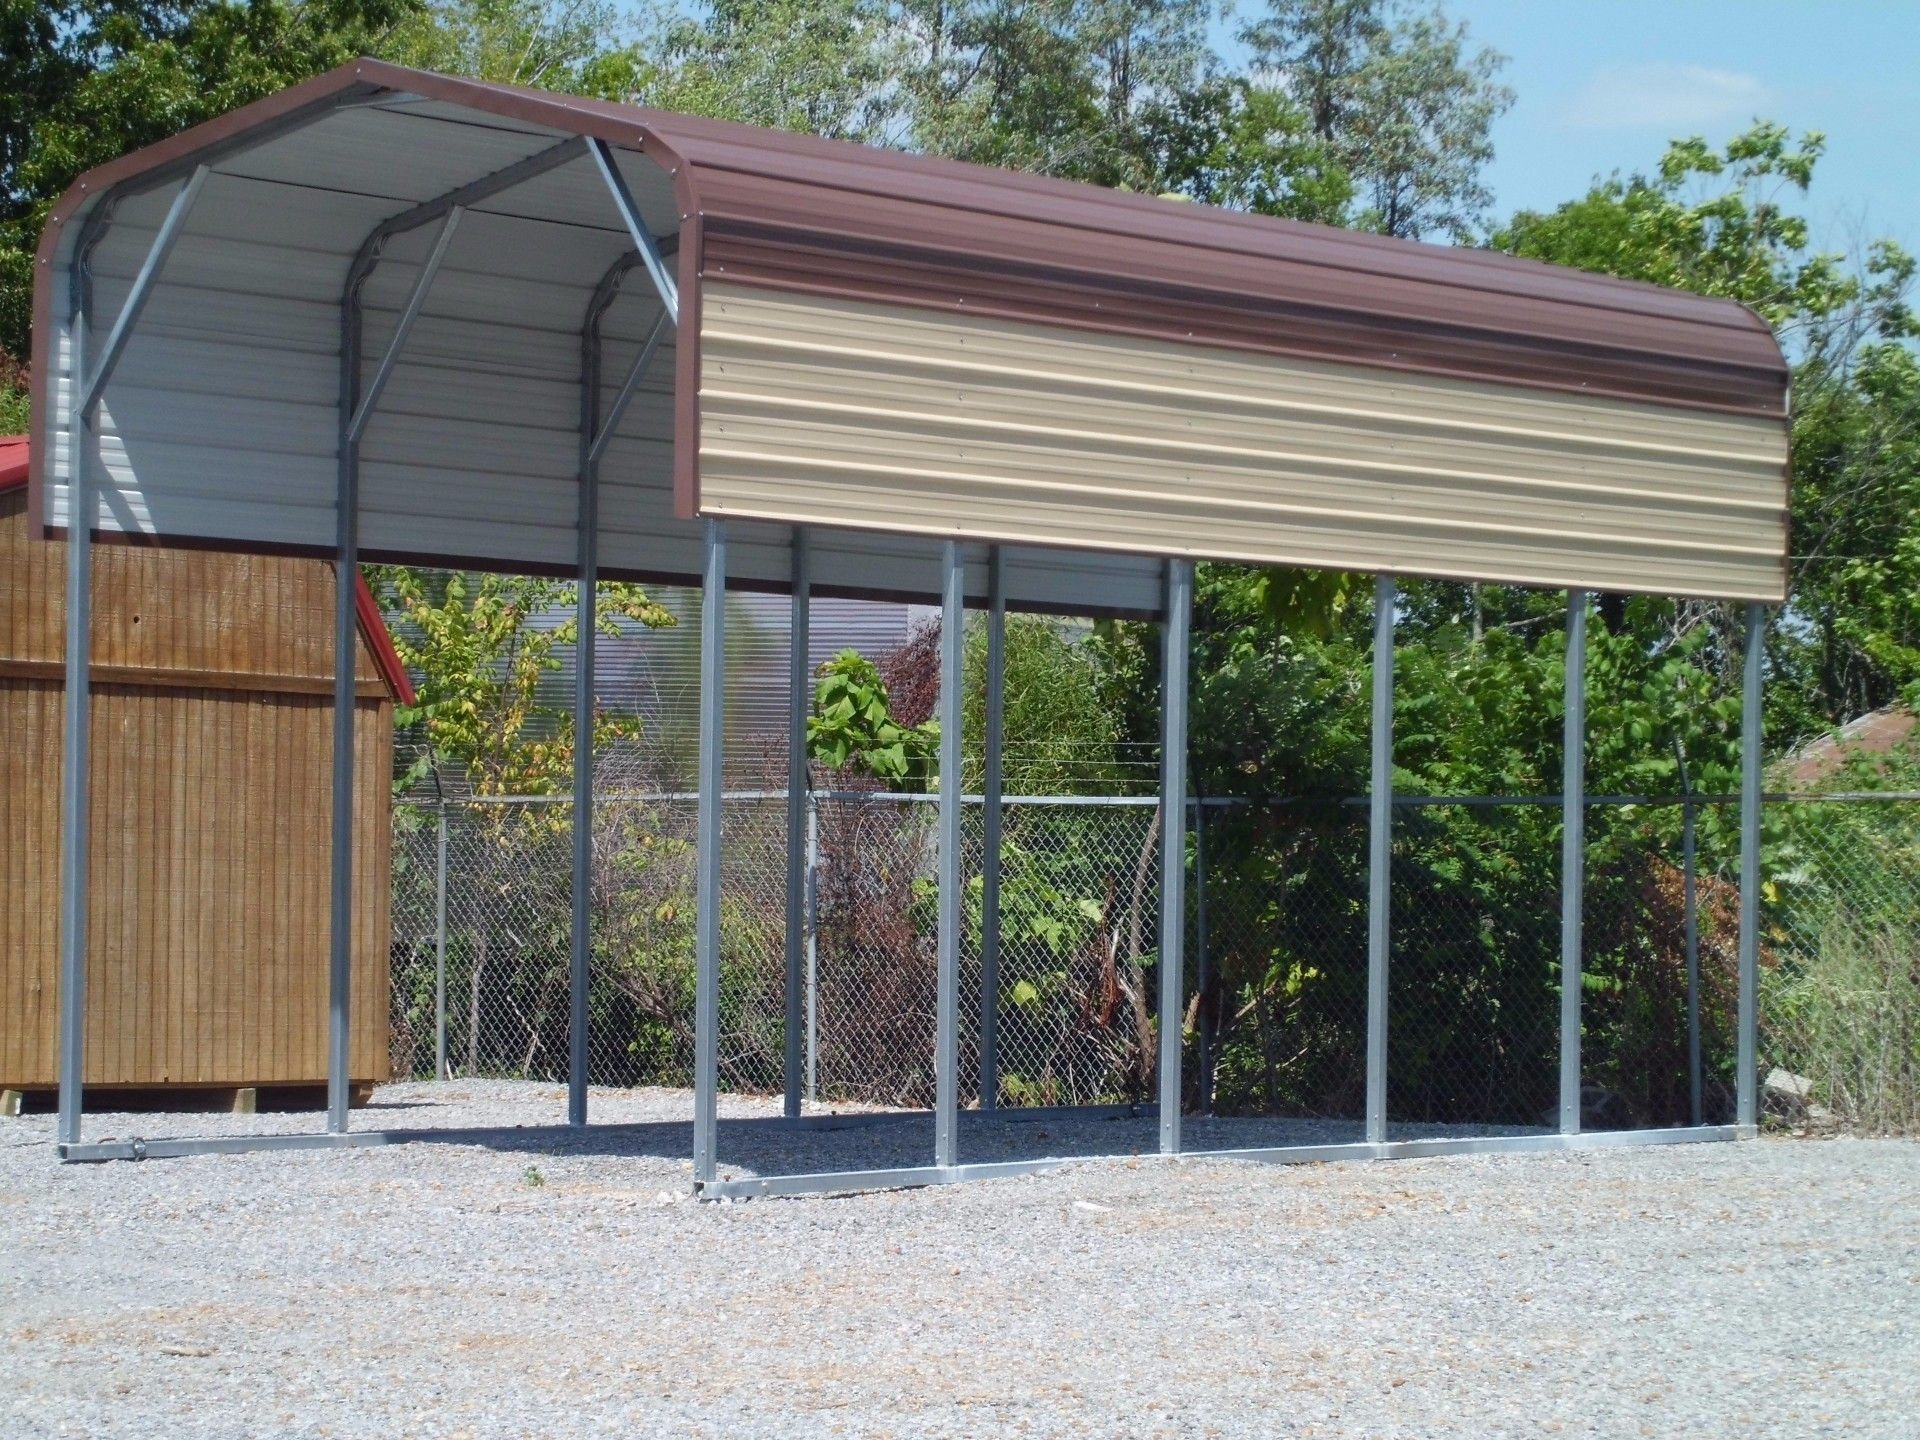 Cheap Carports Carport Garage Portable Carport Diy Carport Palram Carport Wood Carport House Carport Cheap With Images Rv Carports Metal Rv Carports Carport Prices